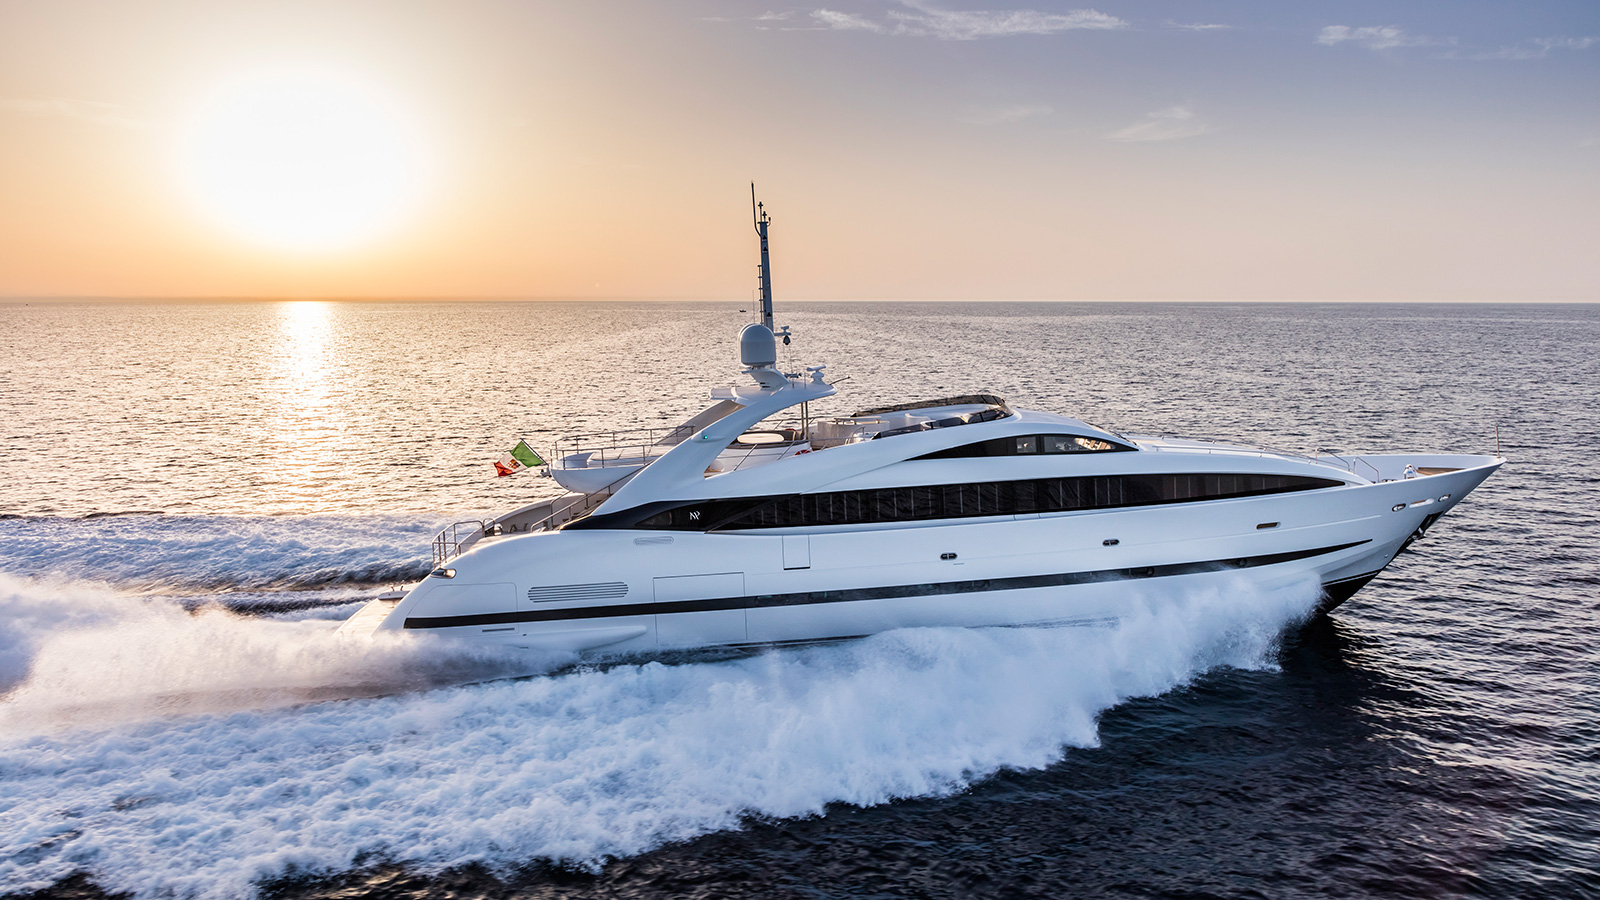 side-view-of-the-isa-120-yacht-clorinda